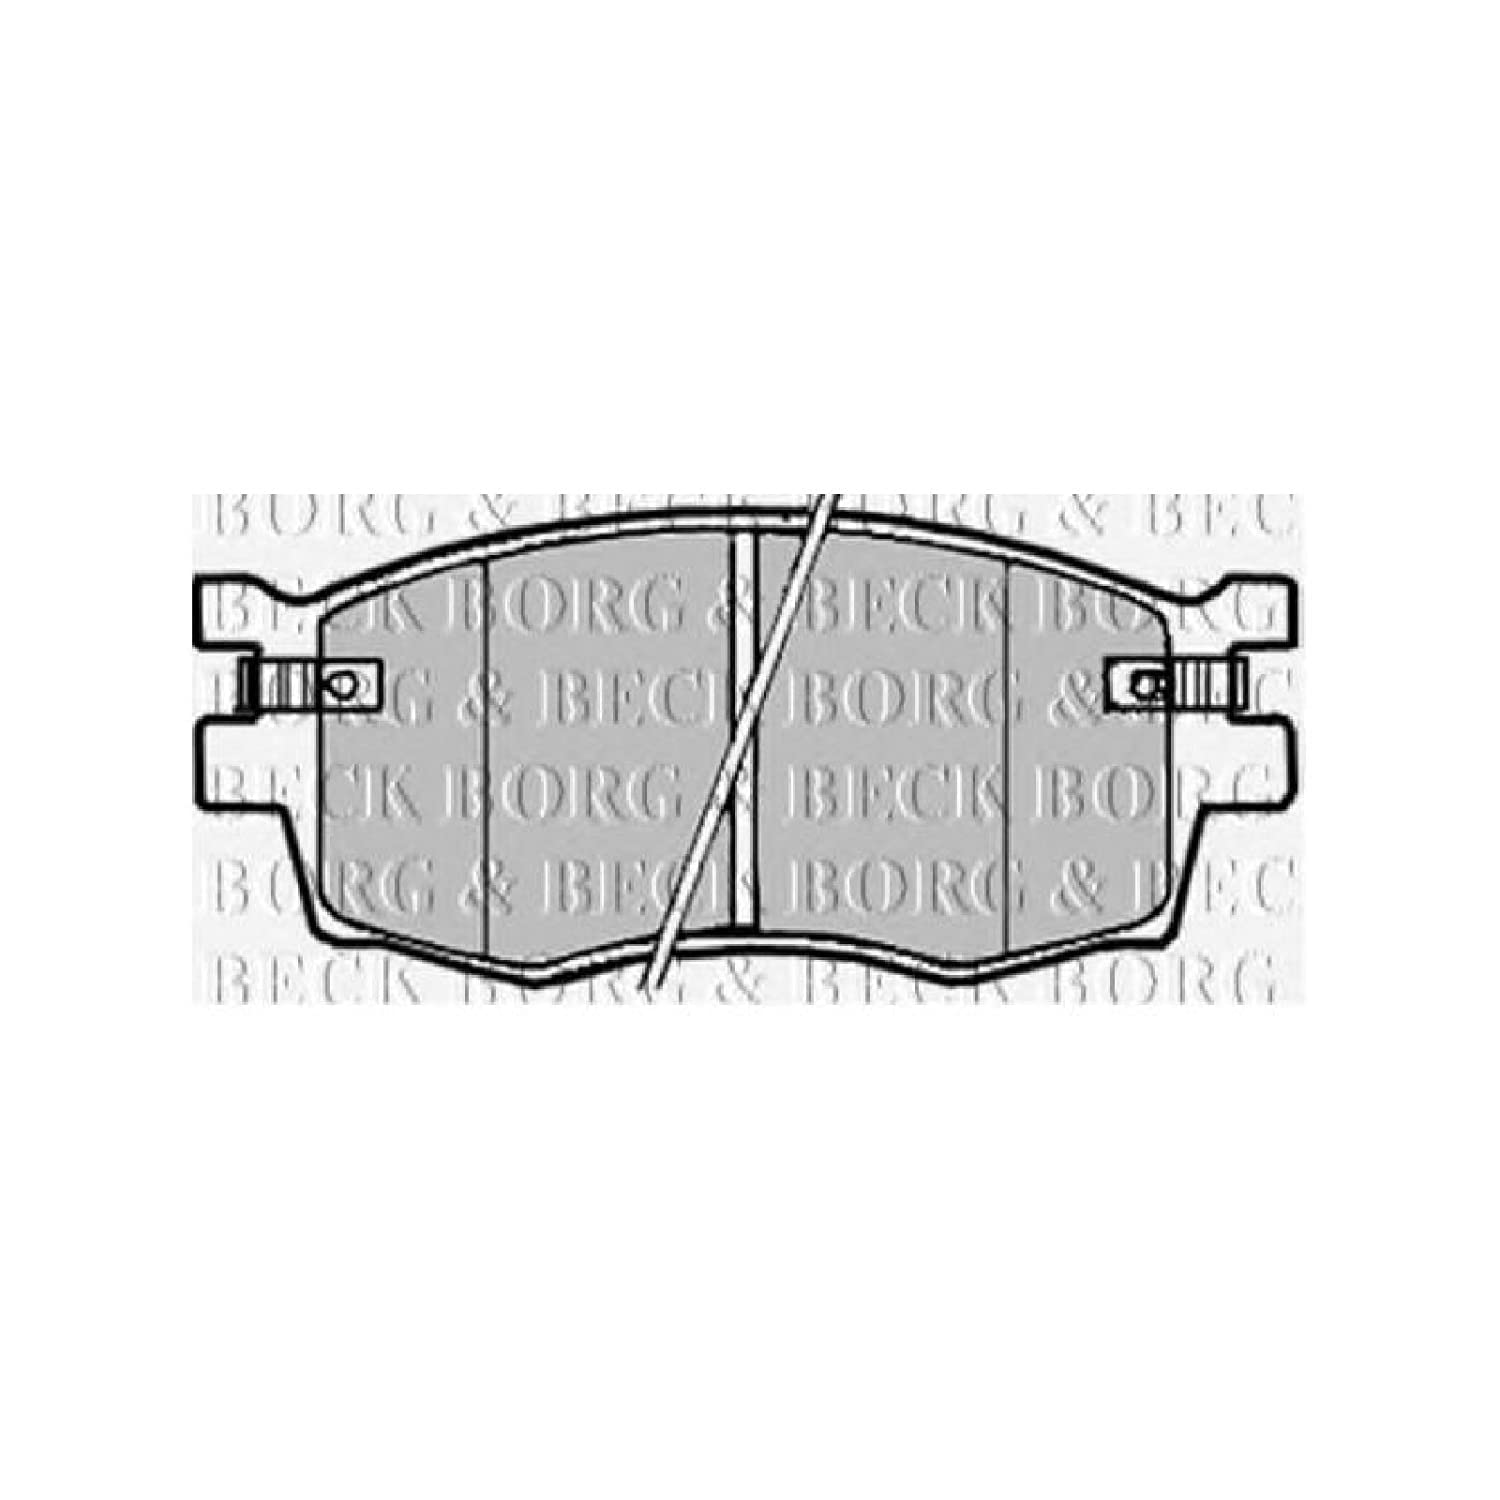 Borg & Beck BBP1923 Front Brake Pads - Includes Wear Indicators/Leads (Mando) First Line